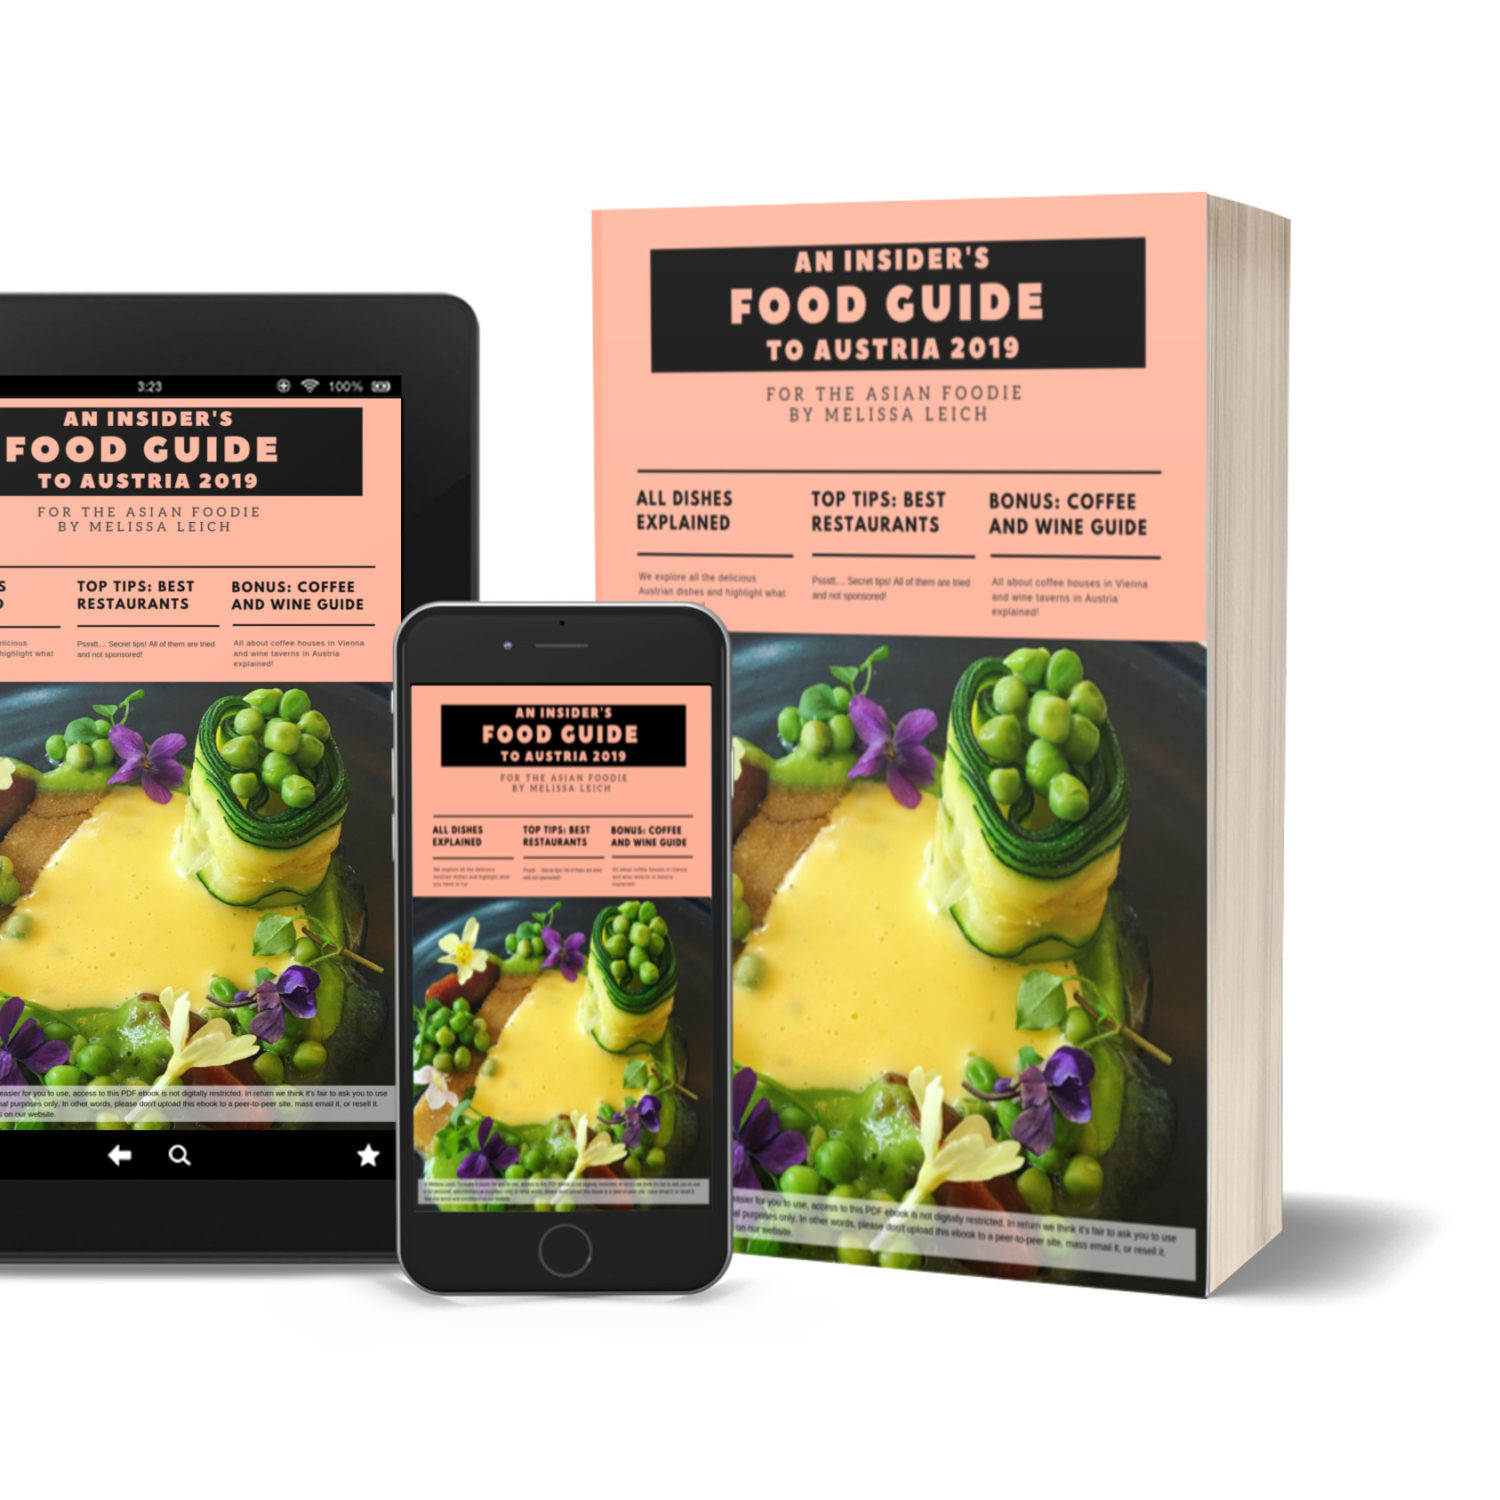 eBook: An Insider's Food Guide to Austria (for the Asian Foodie)